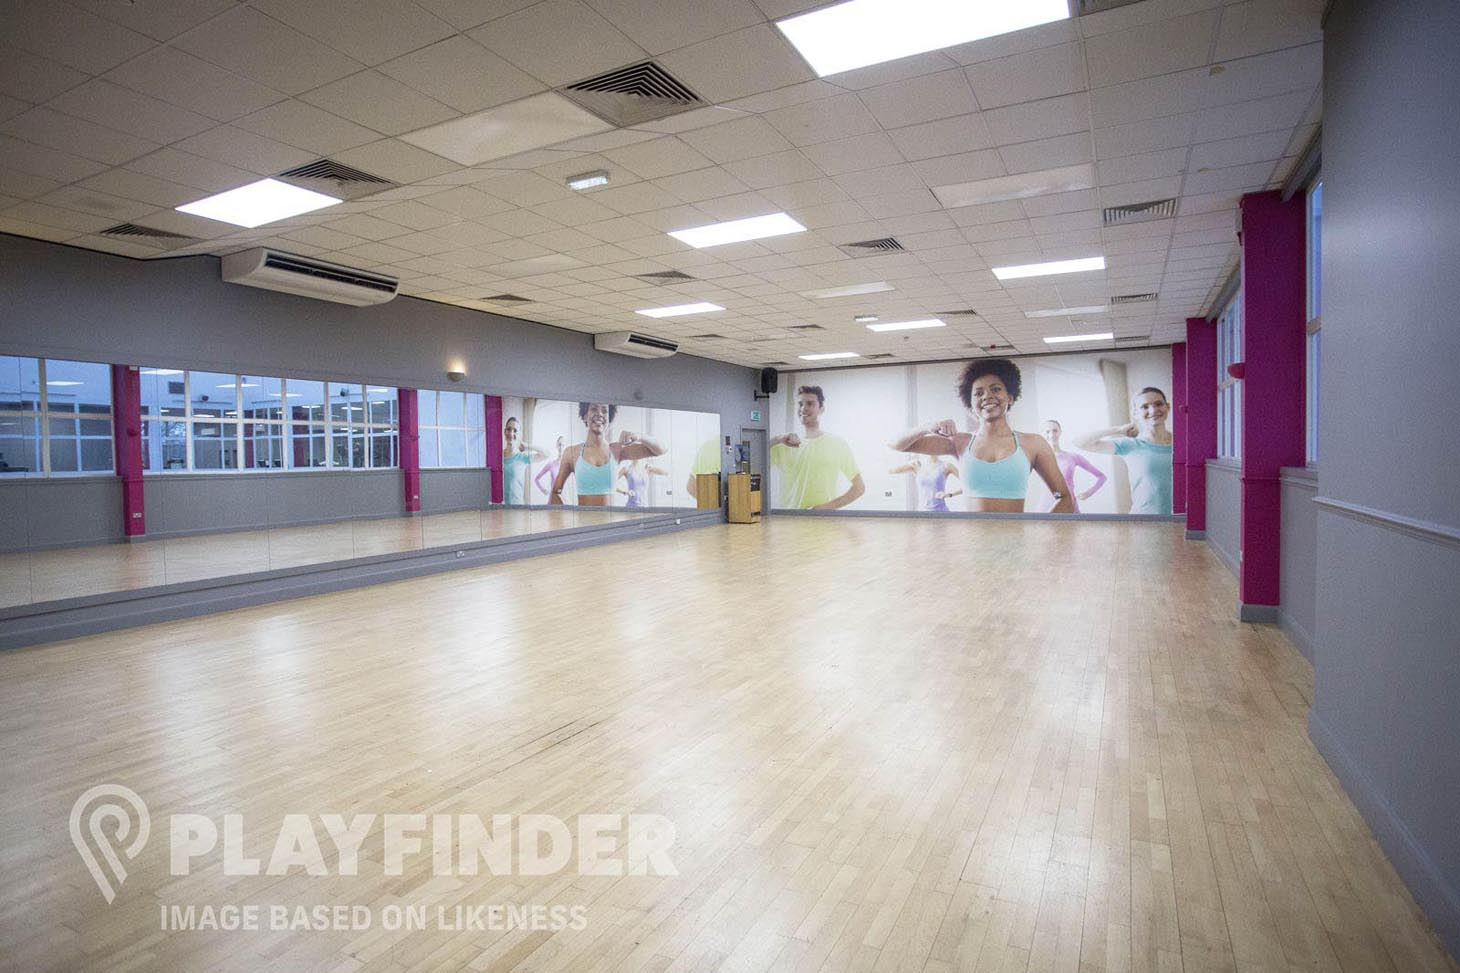 SBL Sports Centre Studio | Dance studio space hire